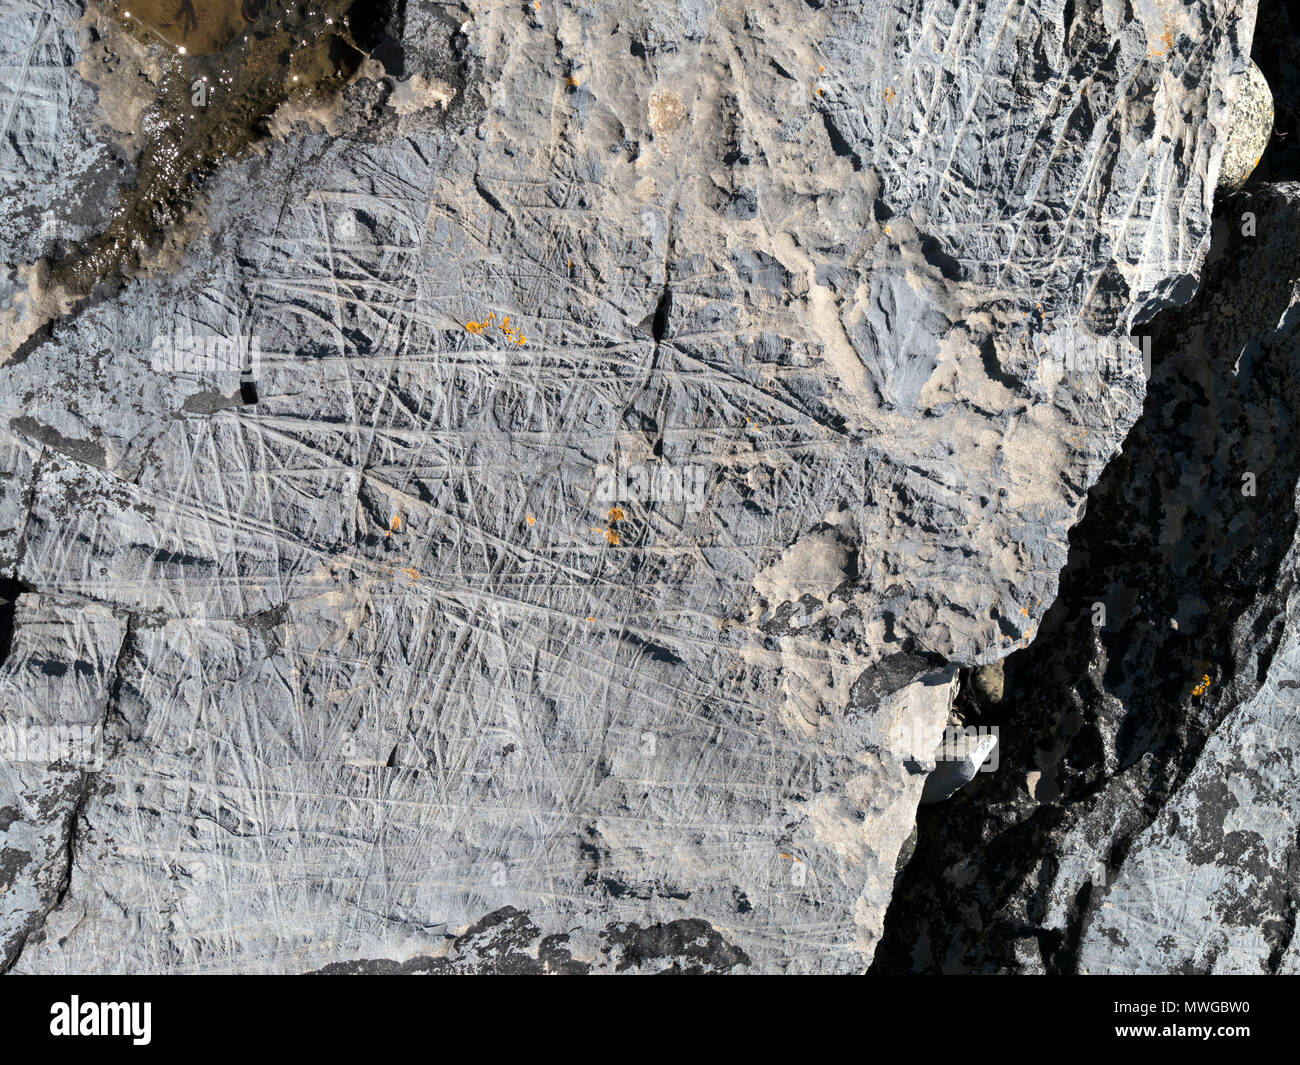 closeup-of-multi-directional-glacial-scouring-on-mudstone-rock-shown-in-foreground-of-alamy-image-mwgbw2-glen-scaladal-bay-isle-of-skye-scotland-uk-MWGBW0.jpg